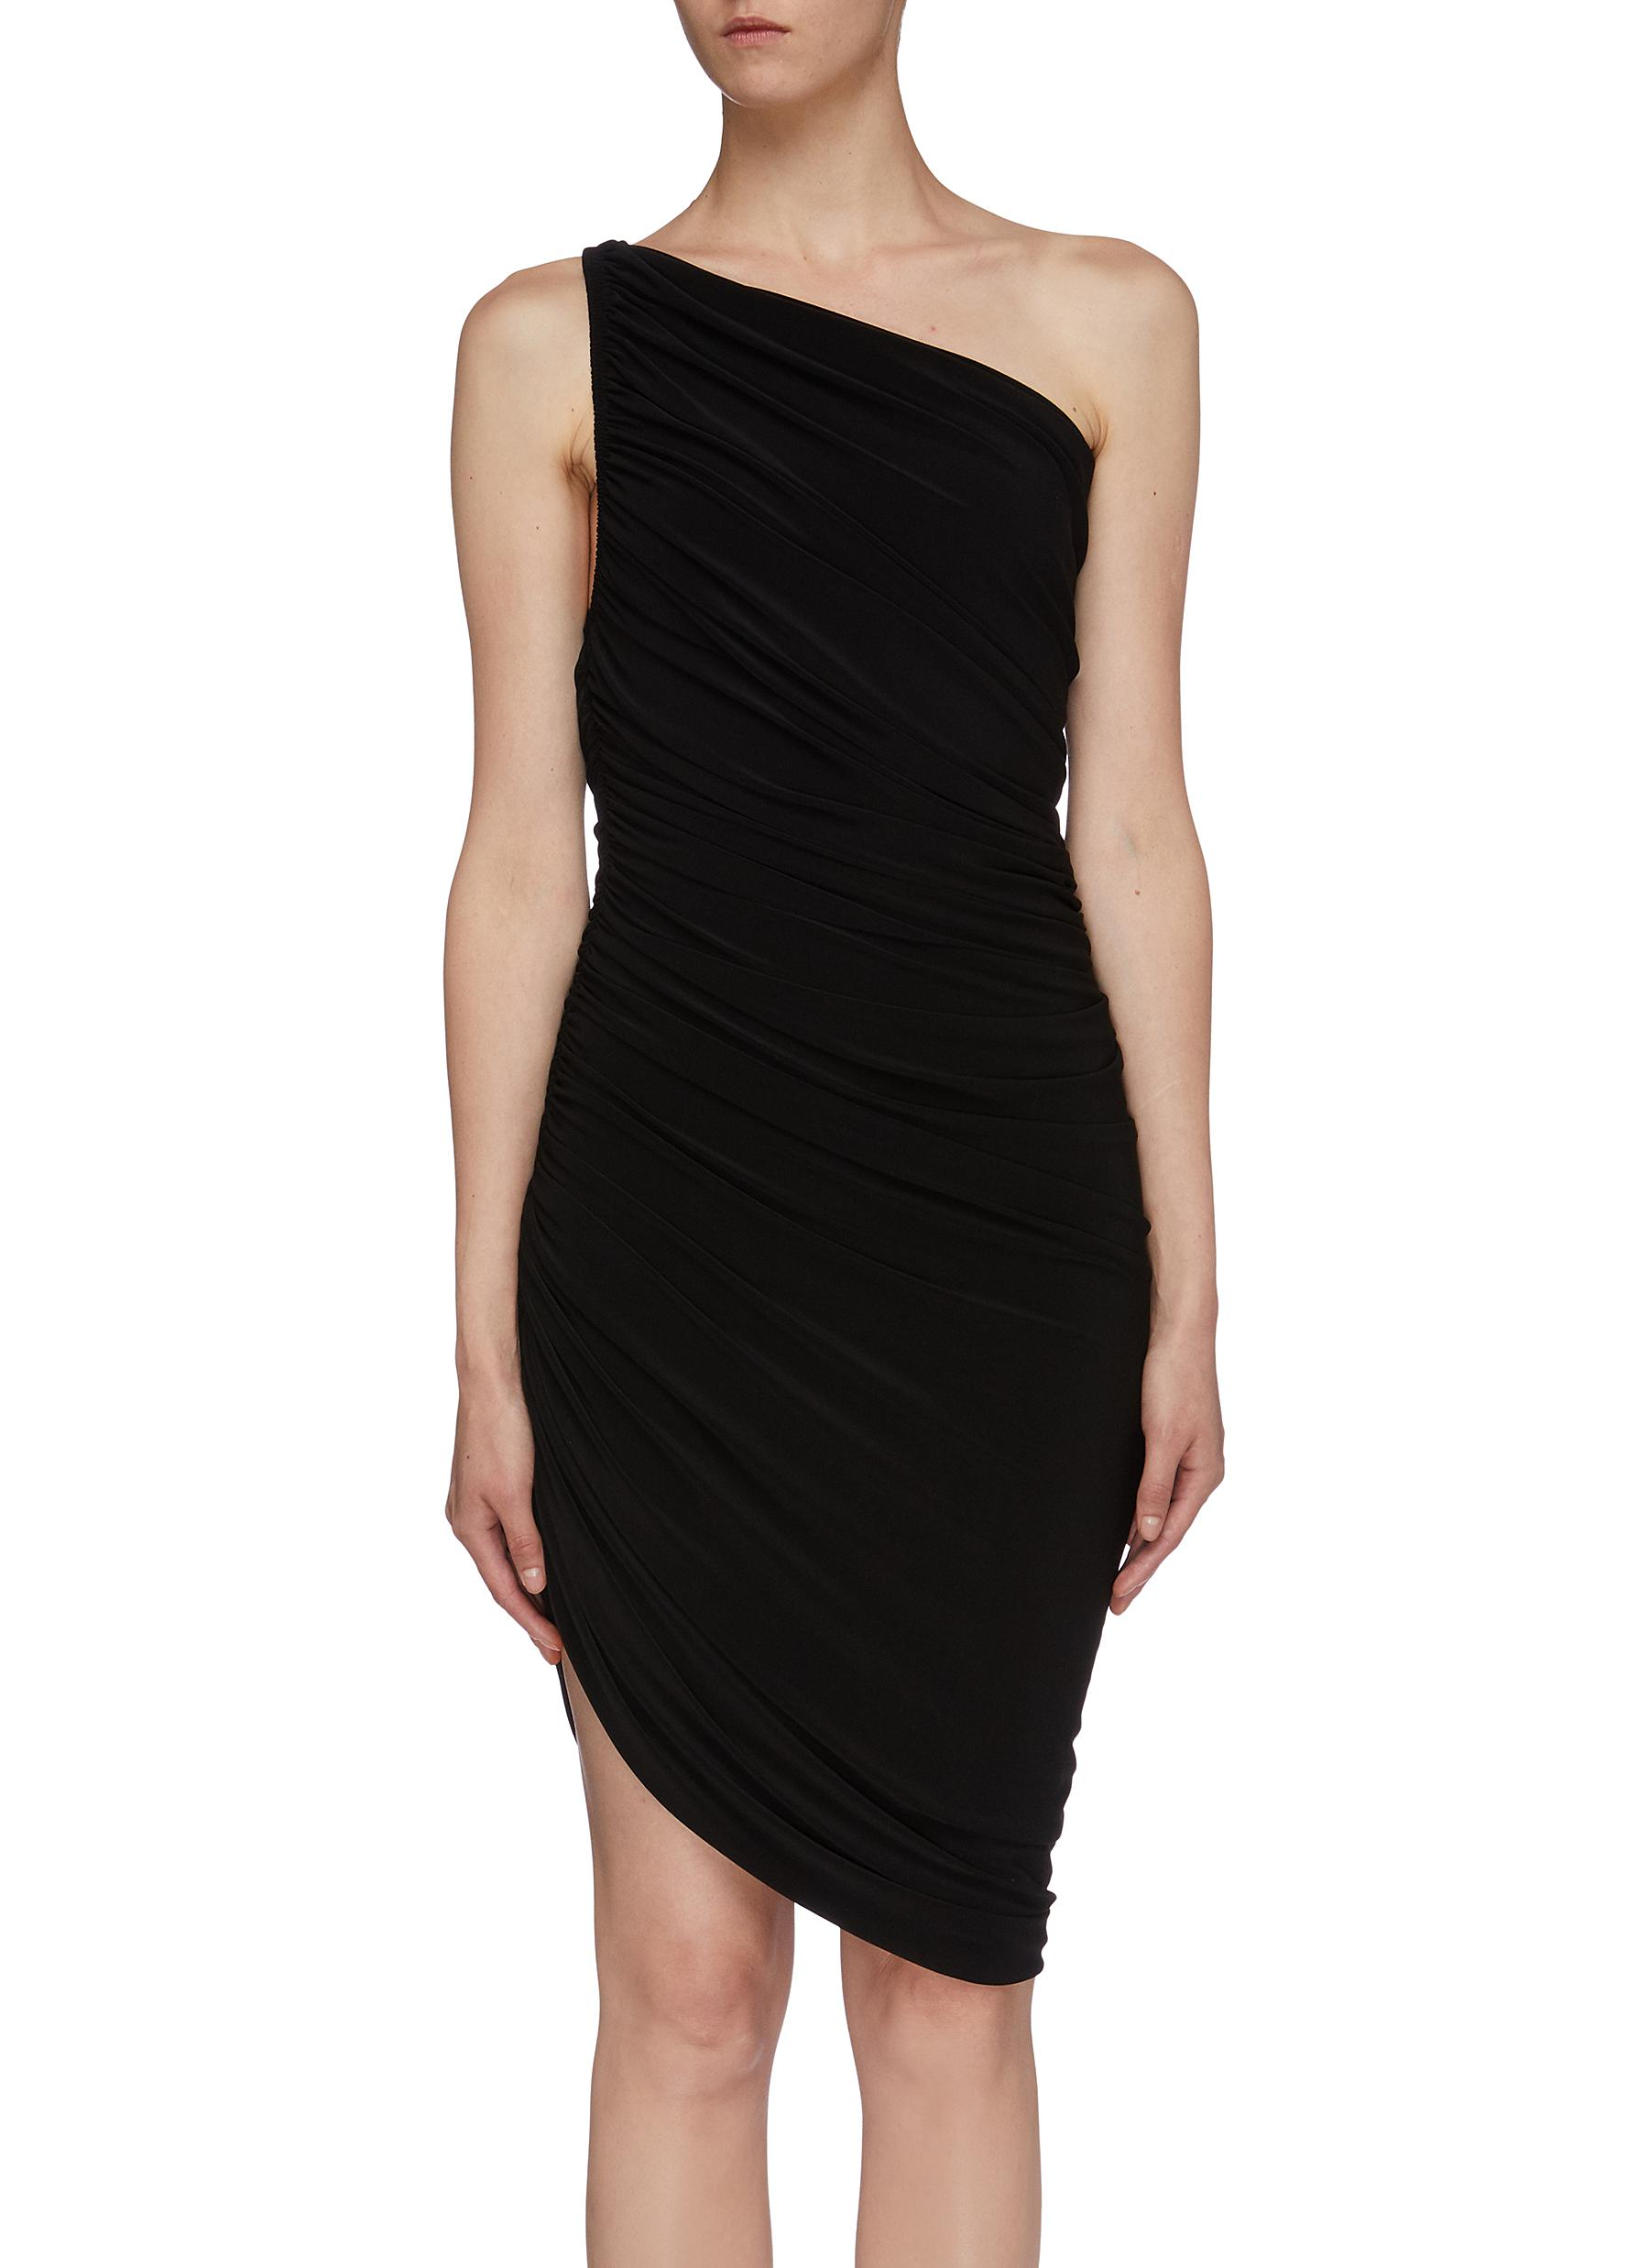 Diana asymmetric ruched one shoulder mini dress by Norma Kamali